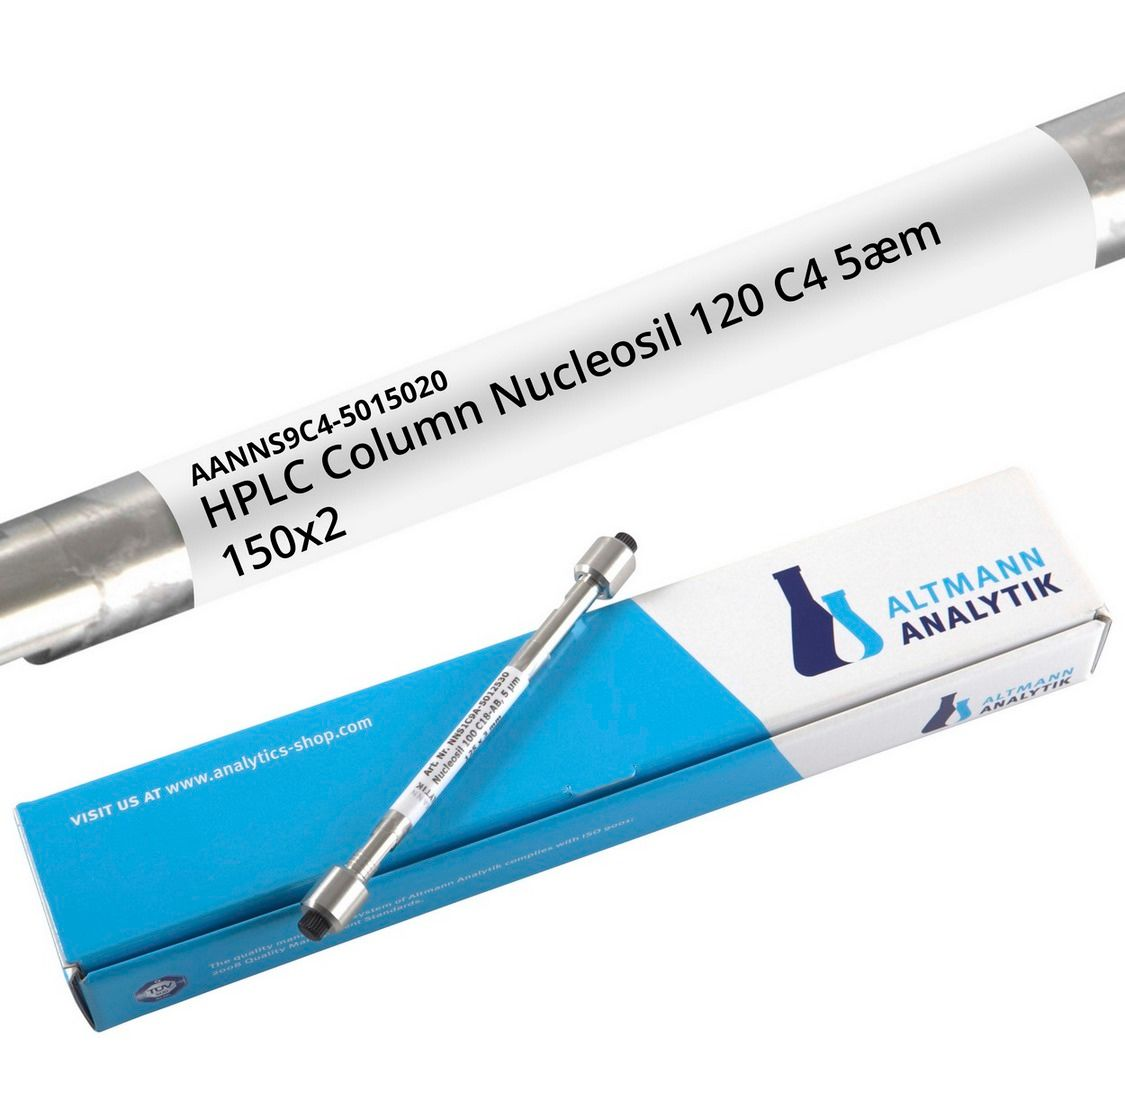 HPLC Column Nucleosil 120 C4 5µm 150x2 mm, 120A